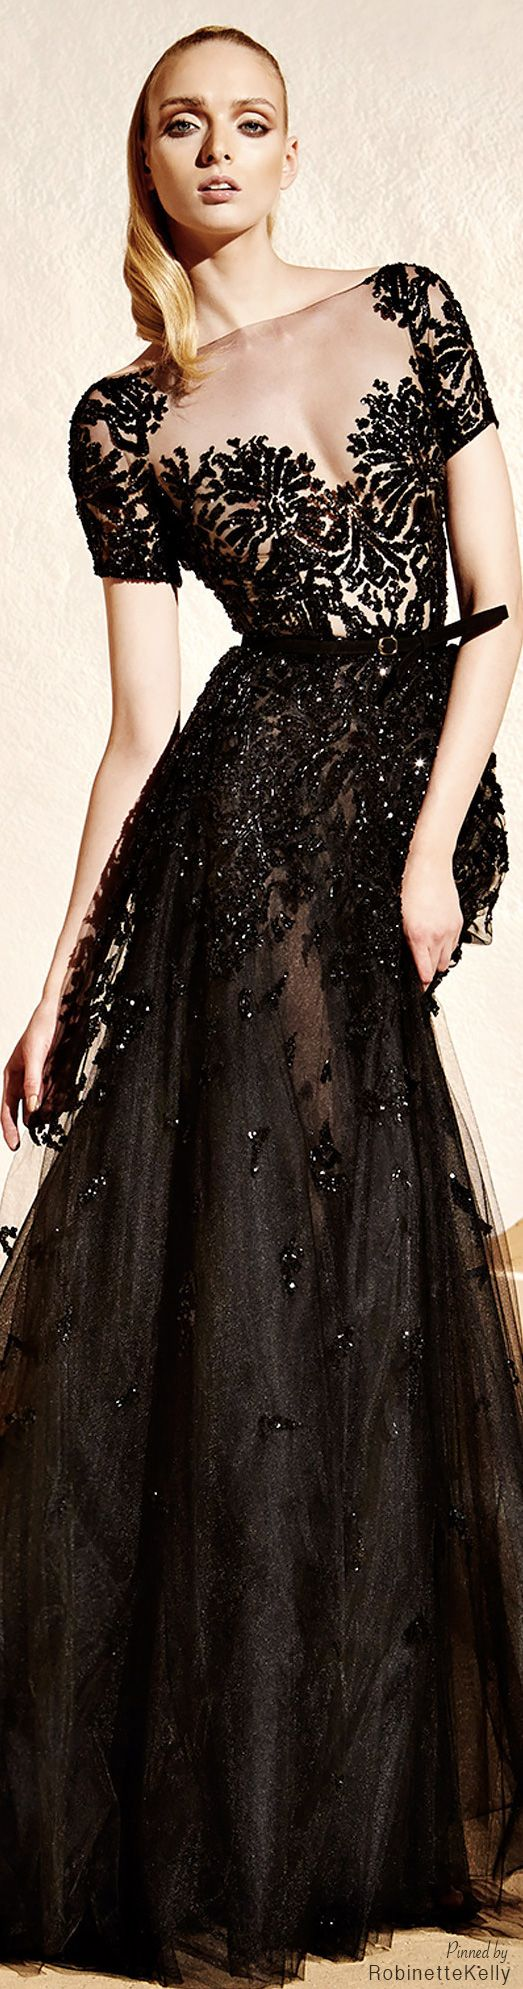 #Zuhair Murad Resort 2015